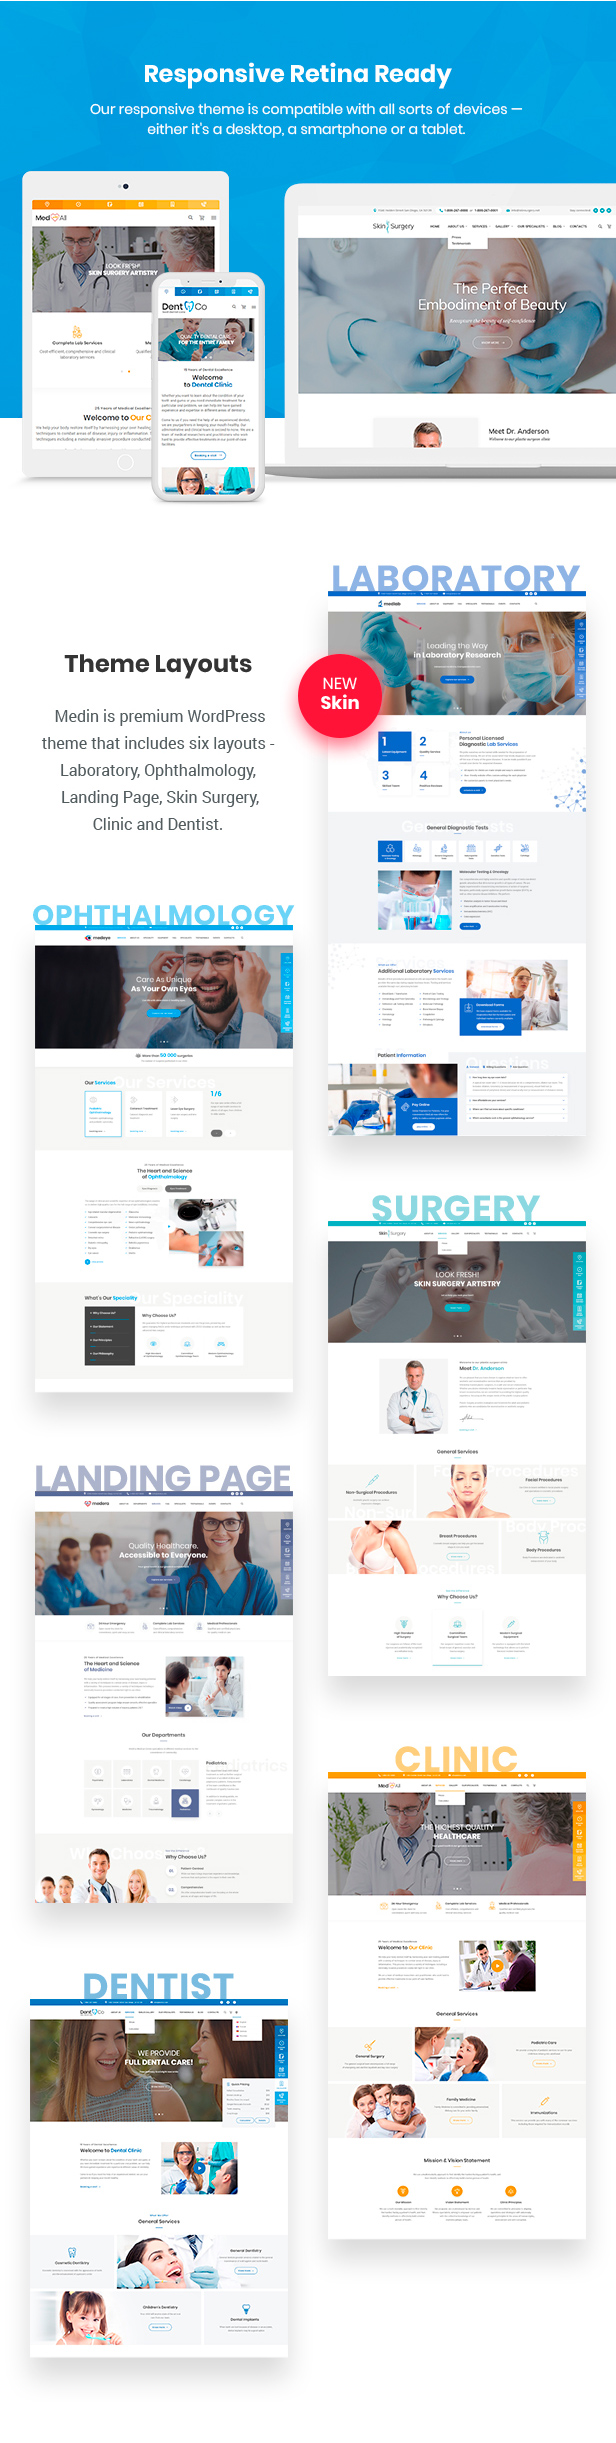 Medin - Medical Center WordPress Theme - 5